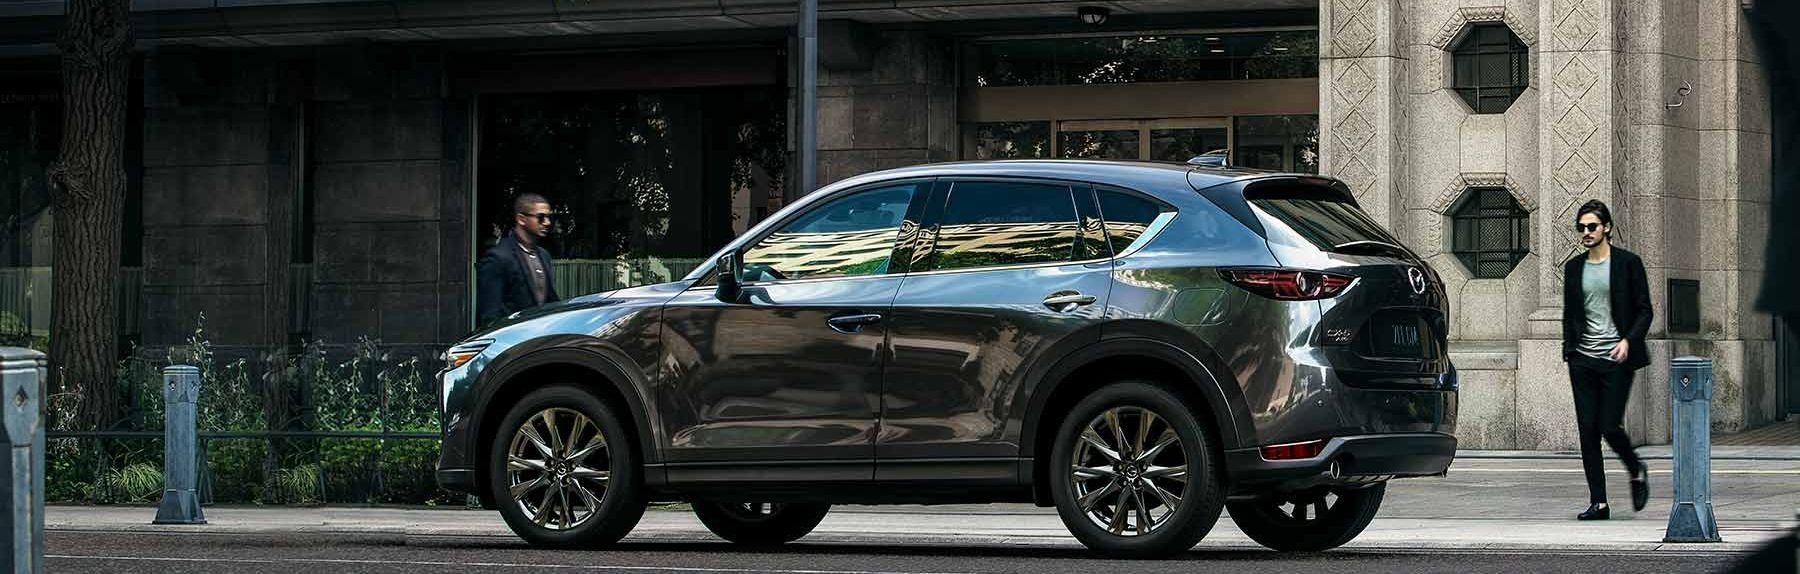 2019 Mazda CX-5 for Sale near Helotes, TX